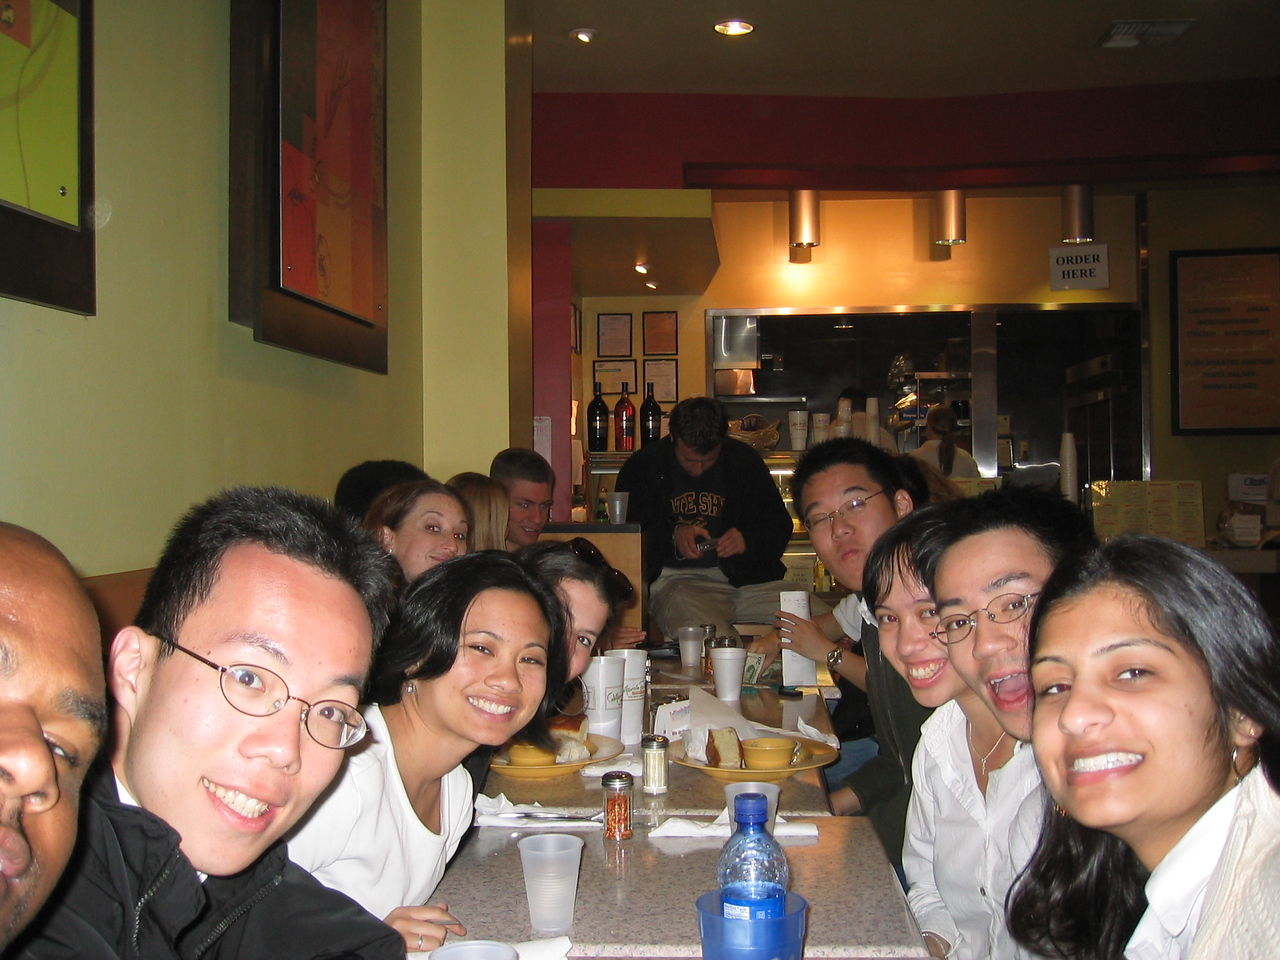 Group photo @ California Pasta Company & Ben's last time with his cup (sniff)